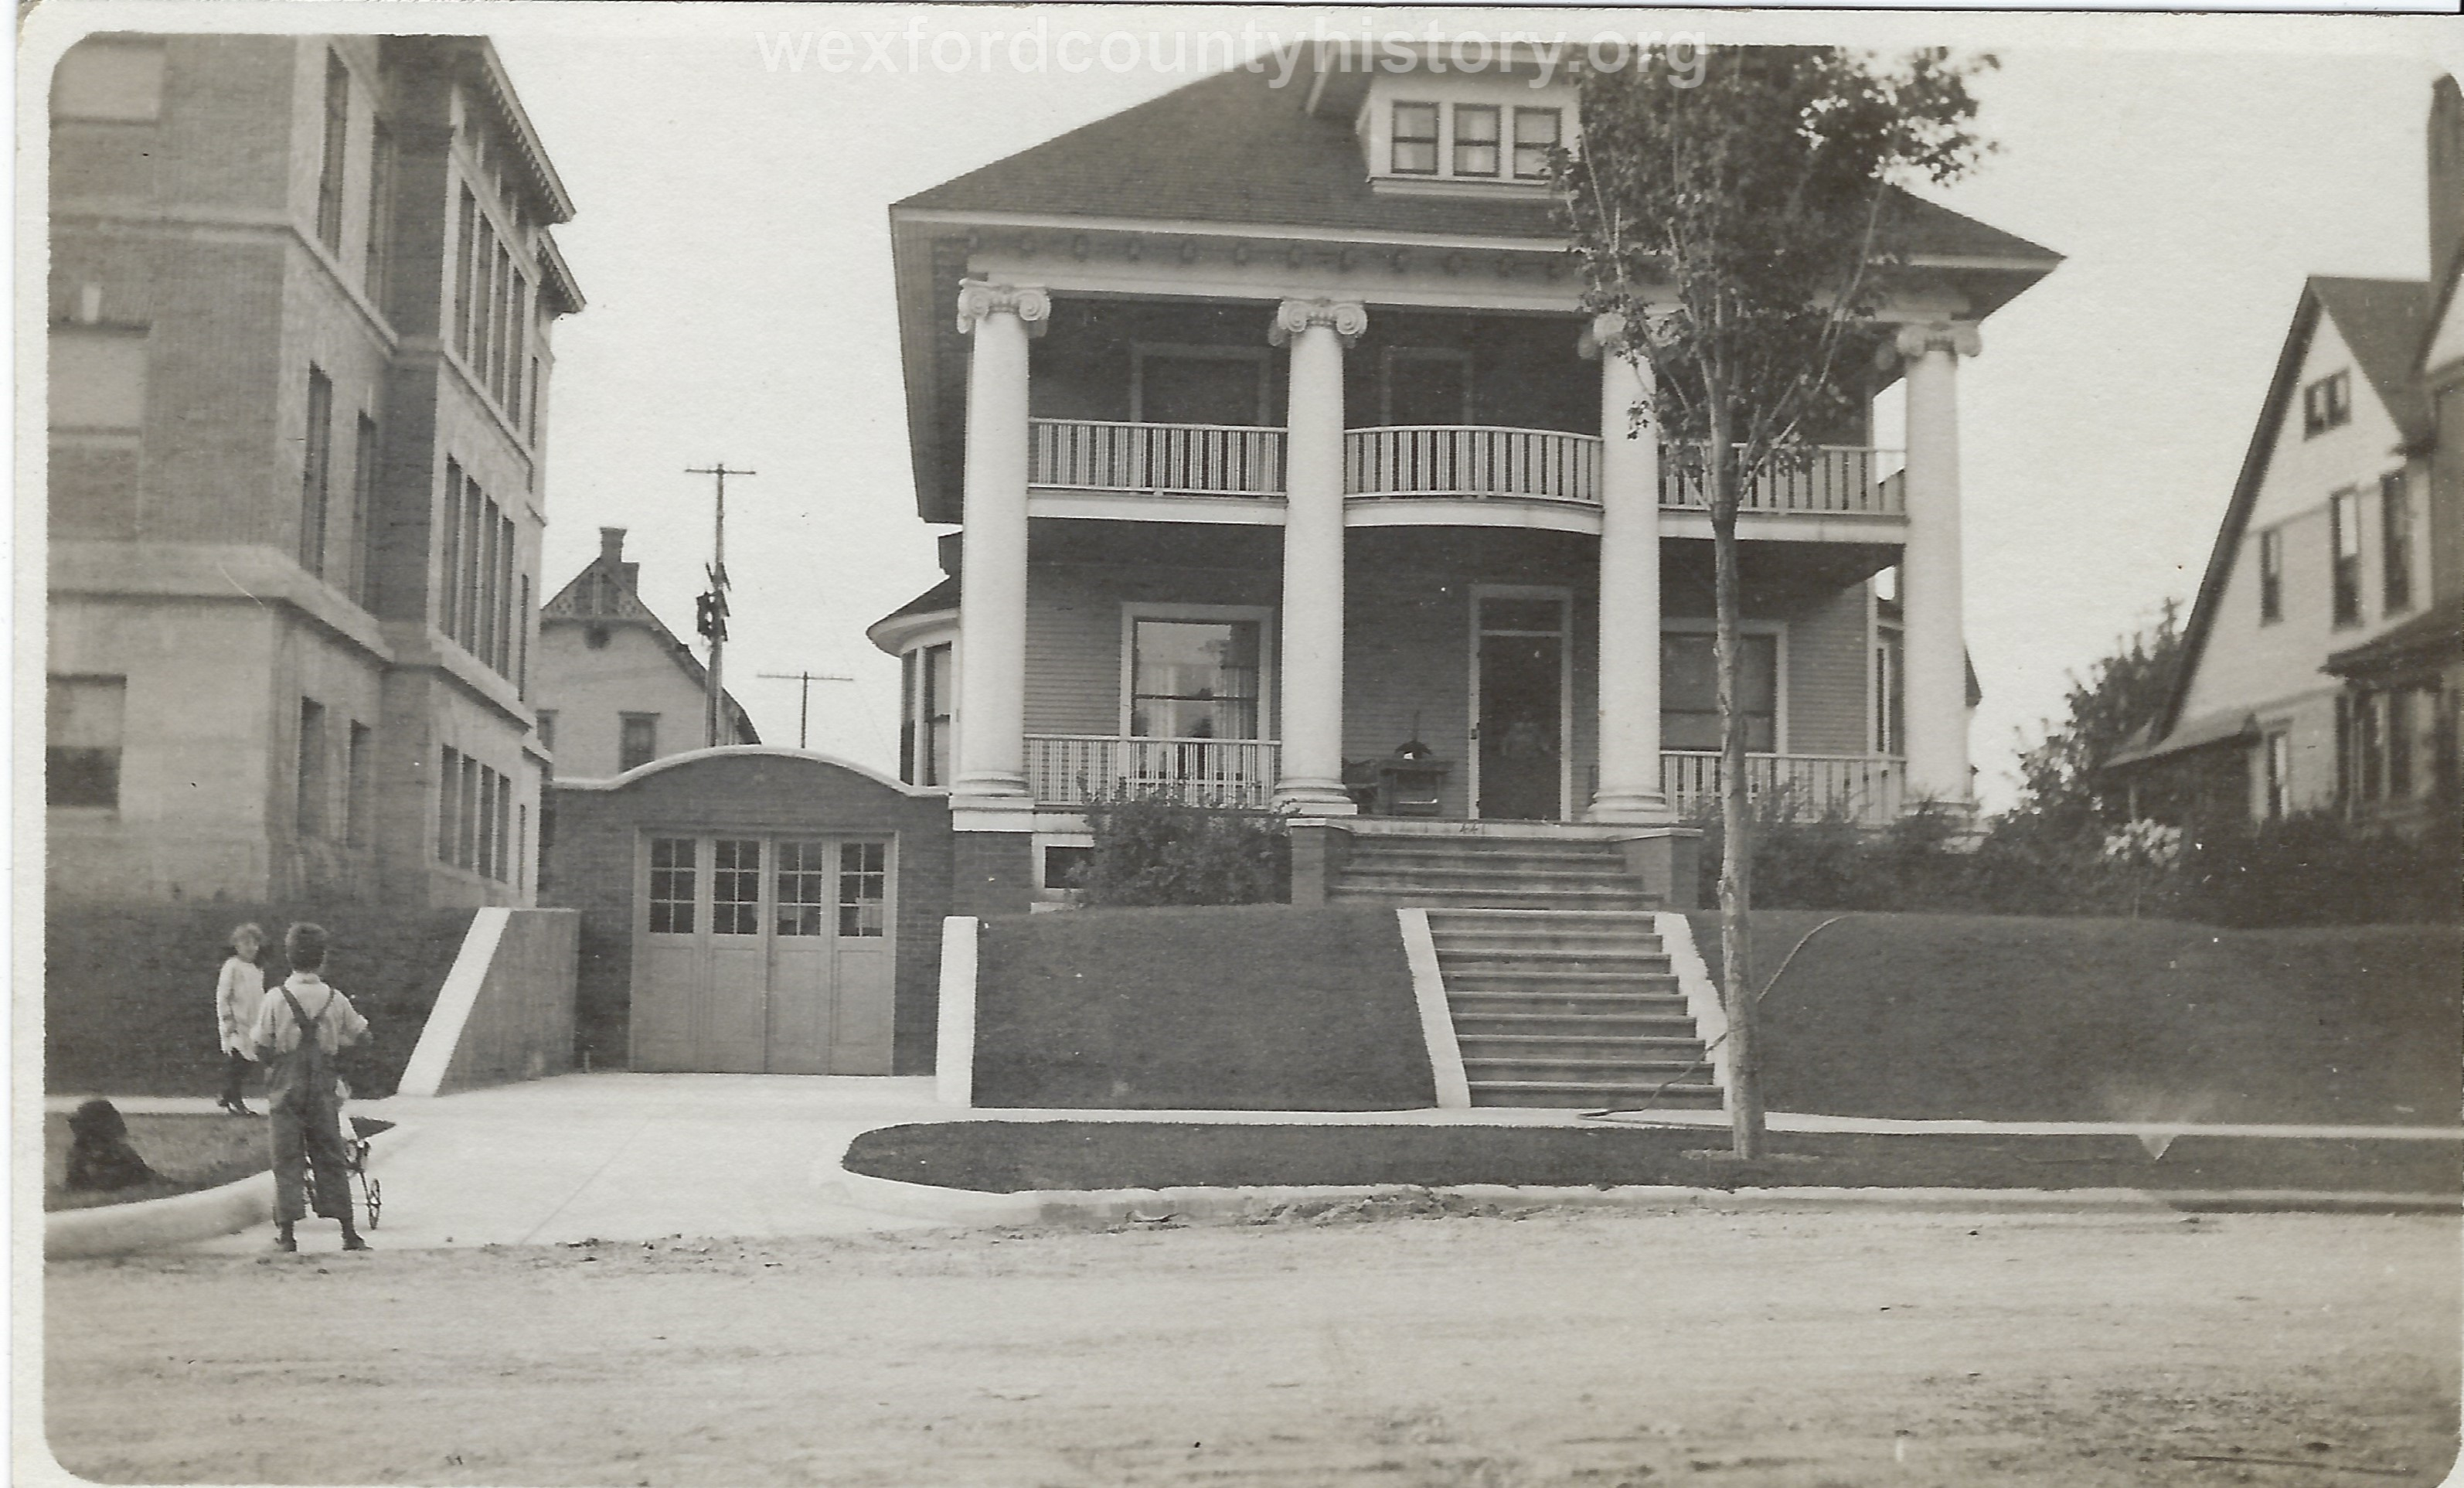 Williams' House - 441 East Division